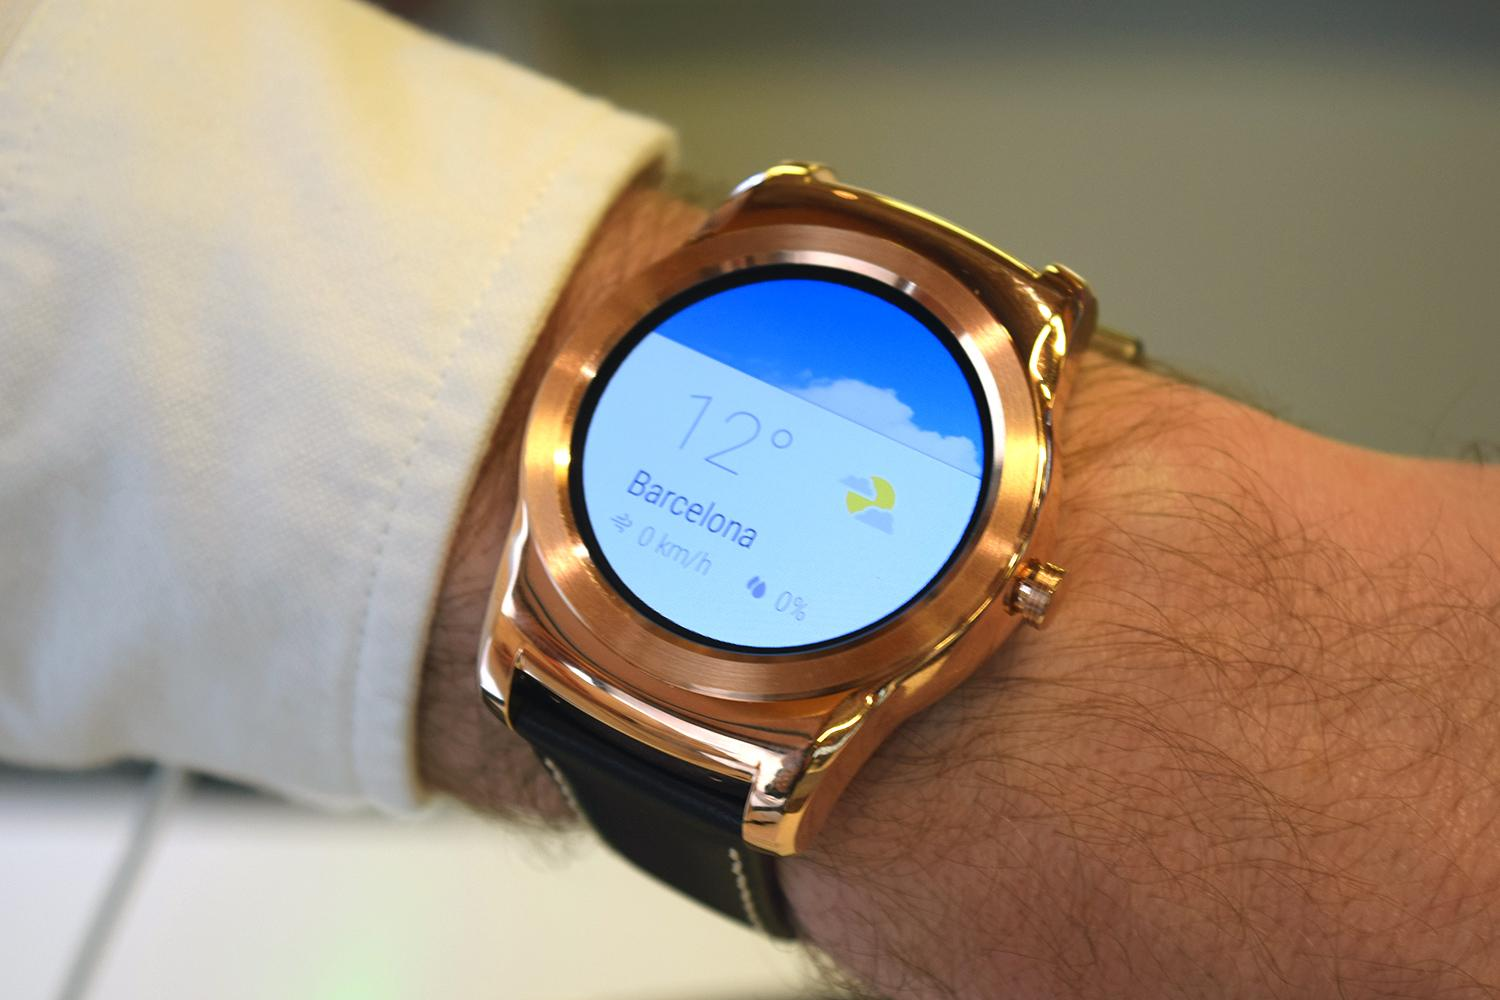 Android wear has lots of new features in the pipeline but some may lock out older watches for Android watches